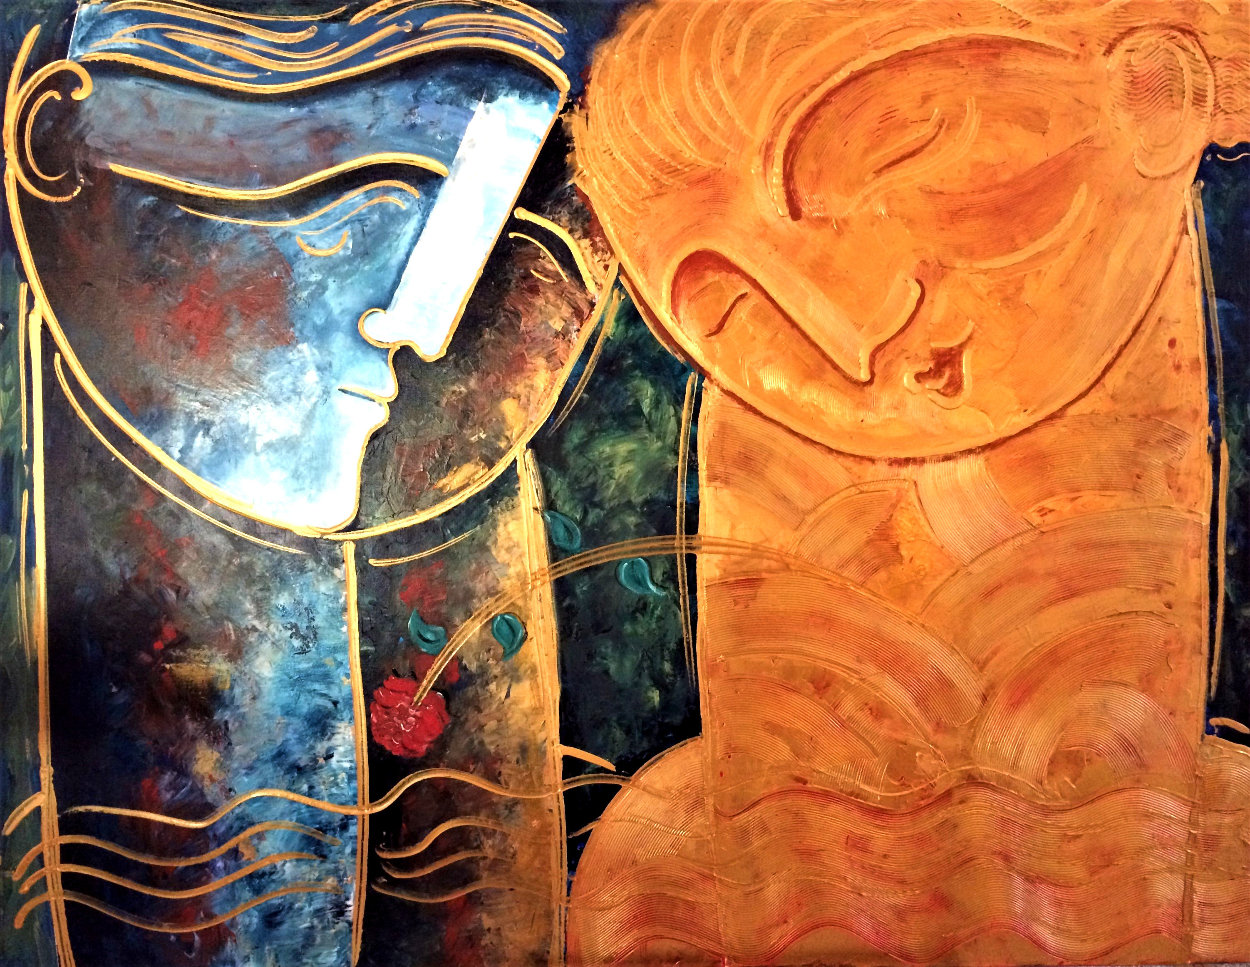 Rose 2019 48x60 Super Huge Original Painting by Gaylord Soli  (Gaylord)